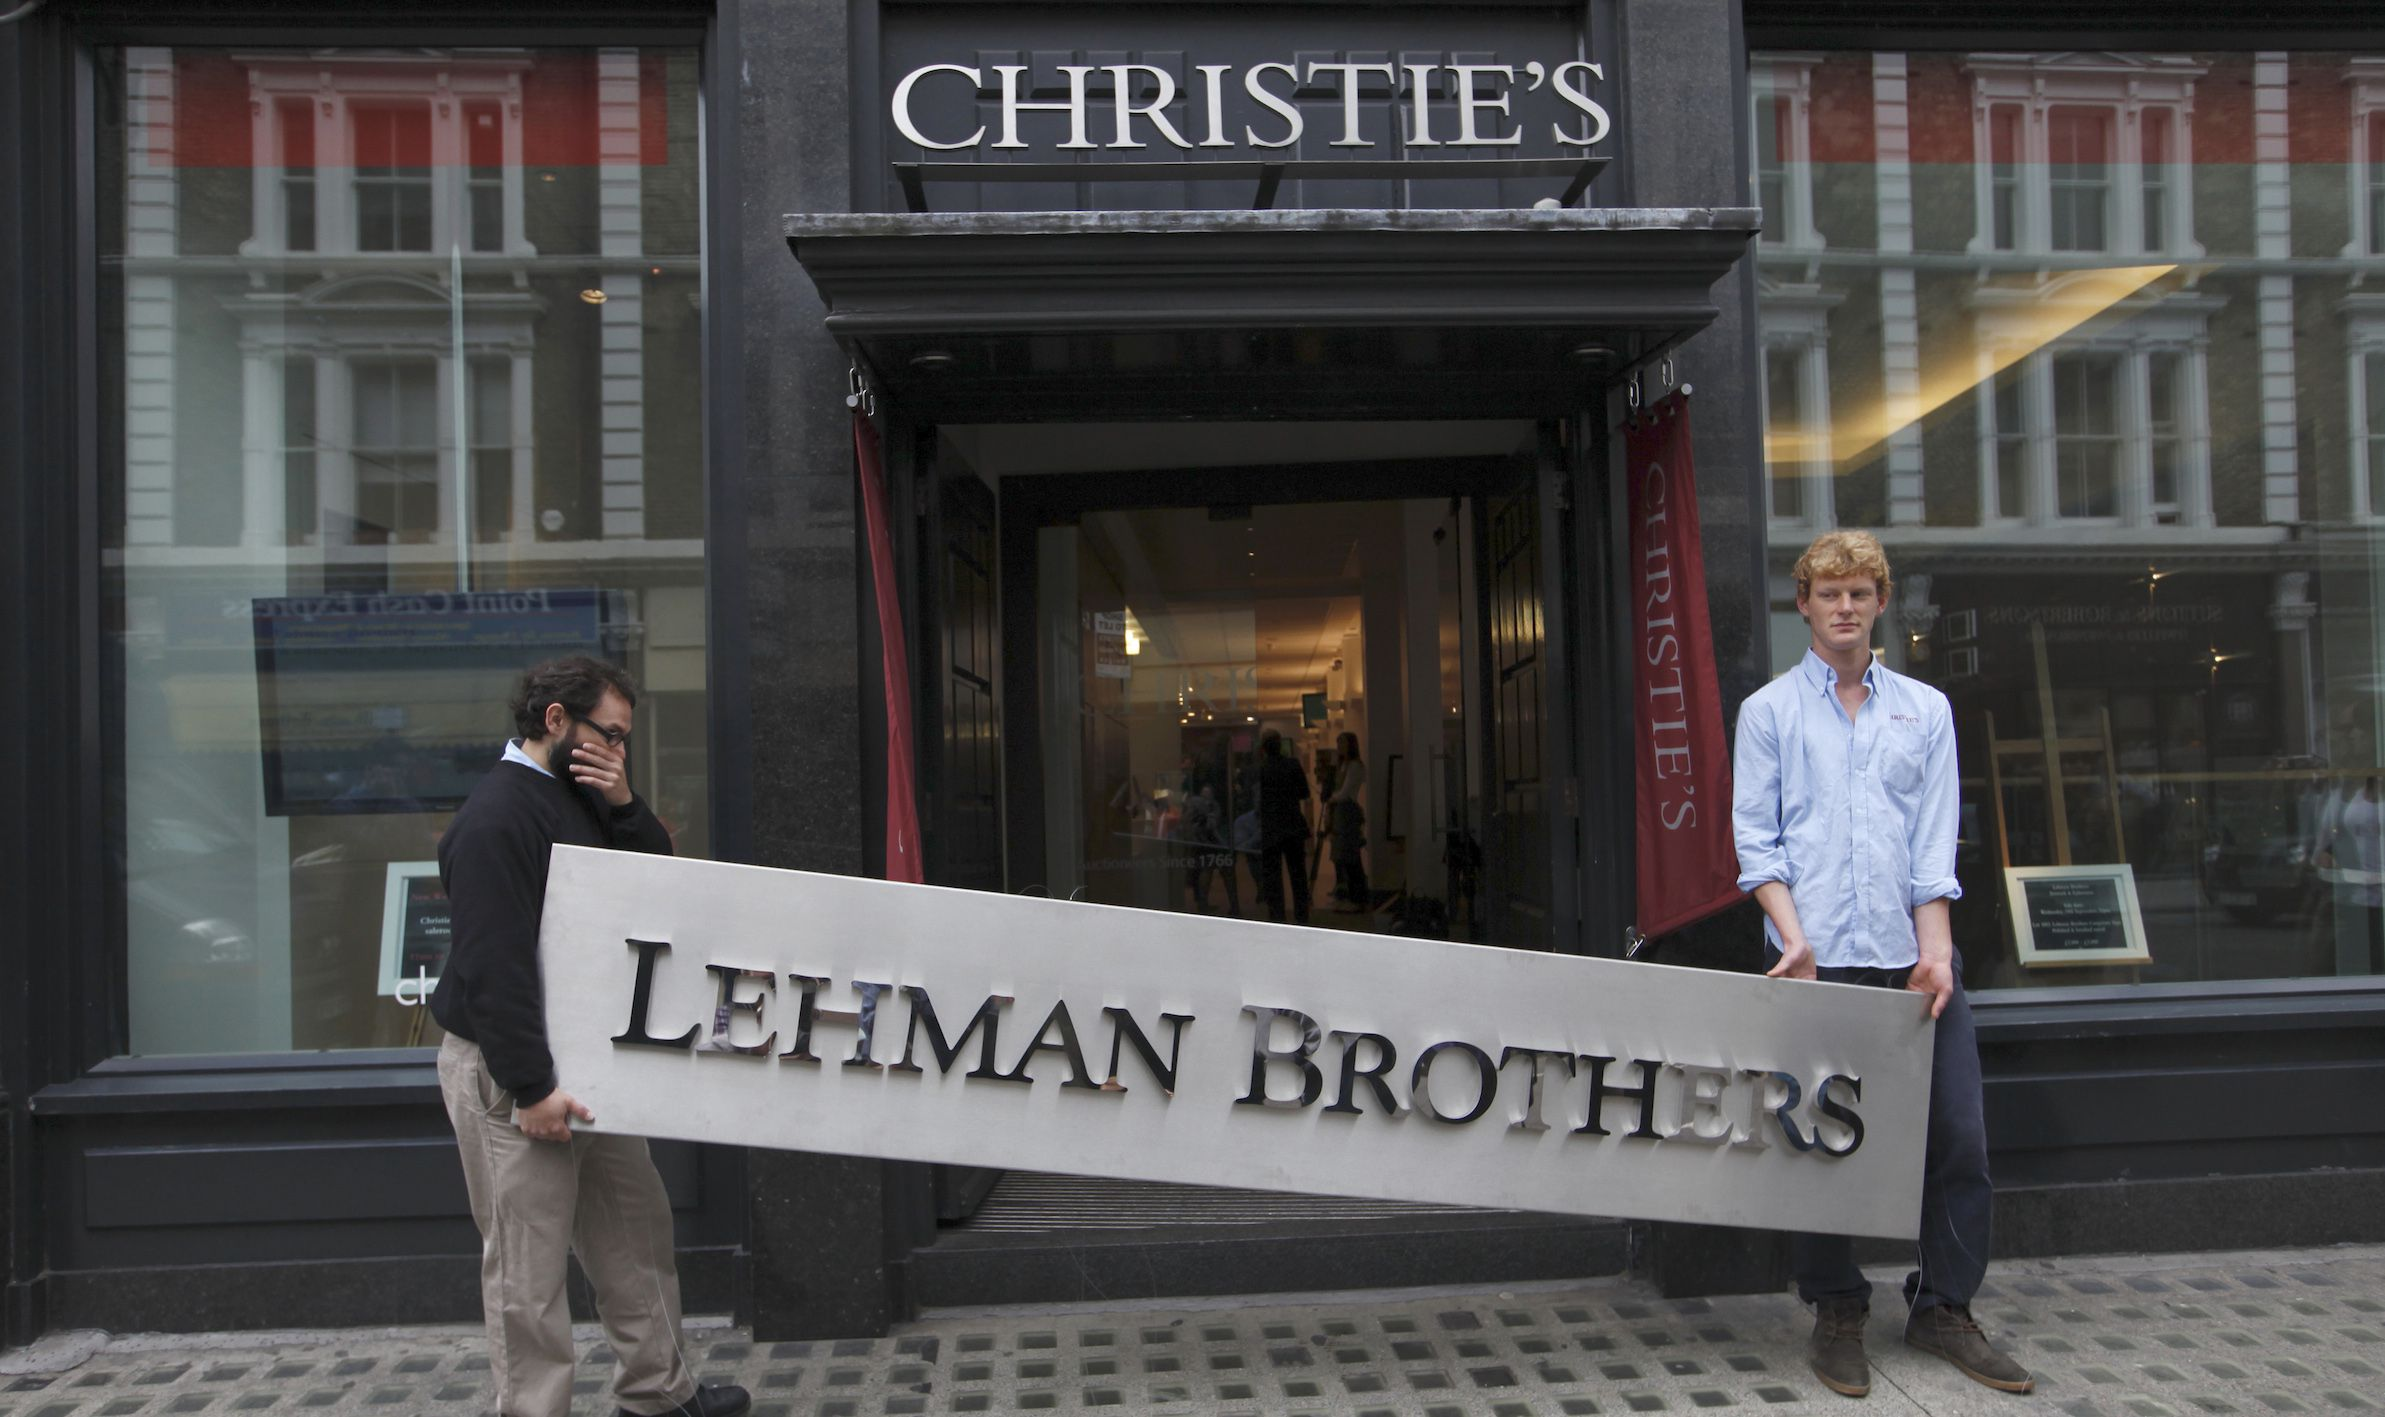 Christie's employees pose for a photograph with a Lehman Brothers sign at Christie's in central London September 24, 2010. Various items are on display before the auction of Lehman Brothers: Artwork and Ephemera, which will take place on September 29. REUTERS/Andrew Winning (BRITAIN - Tags: ENTERTAINMENT BUSINESS SOCIETY) - RTXSLK5